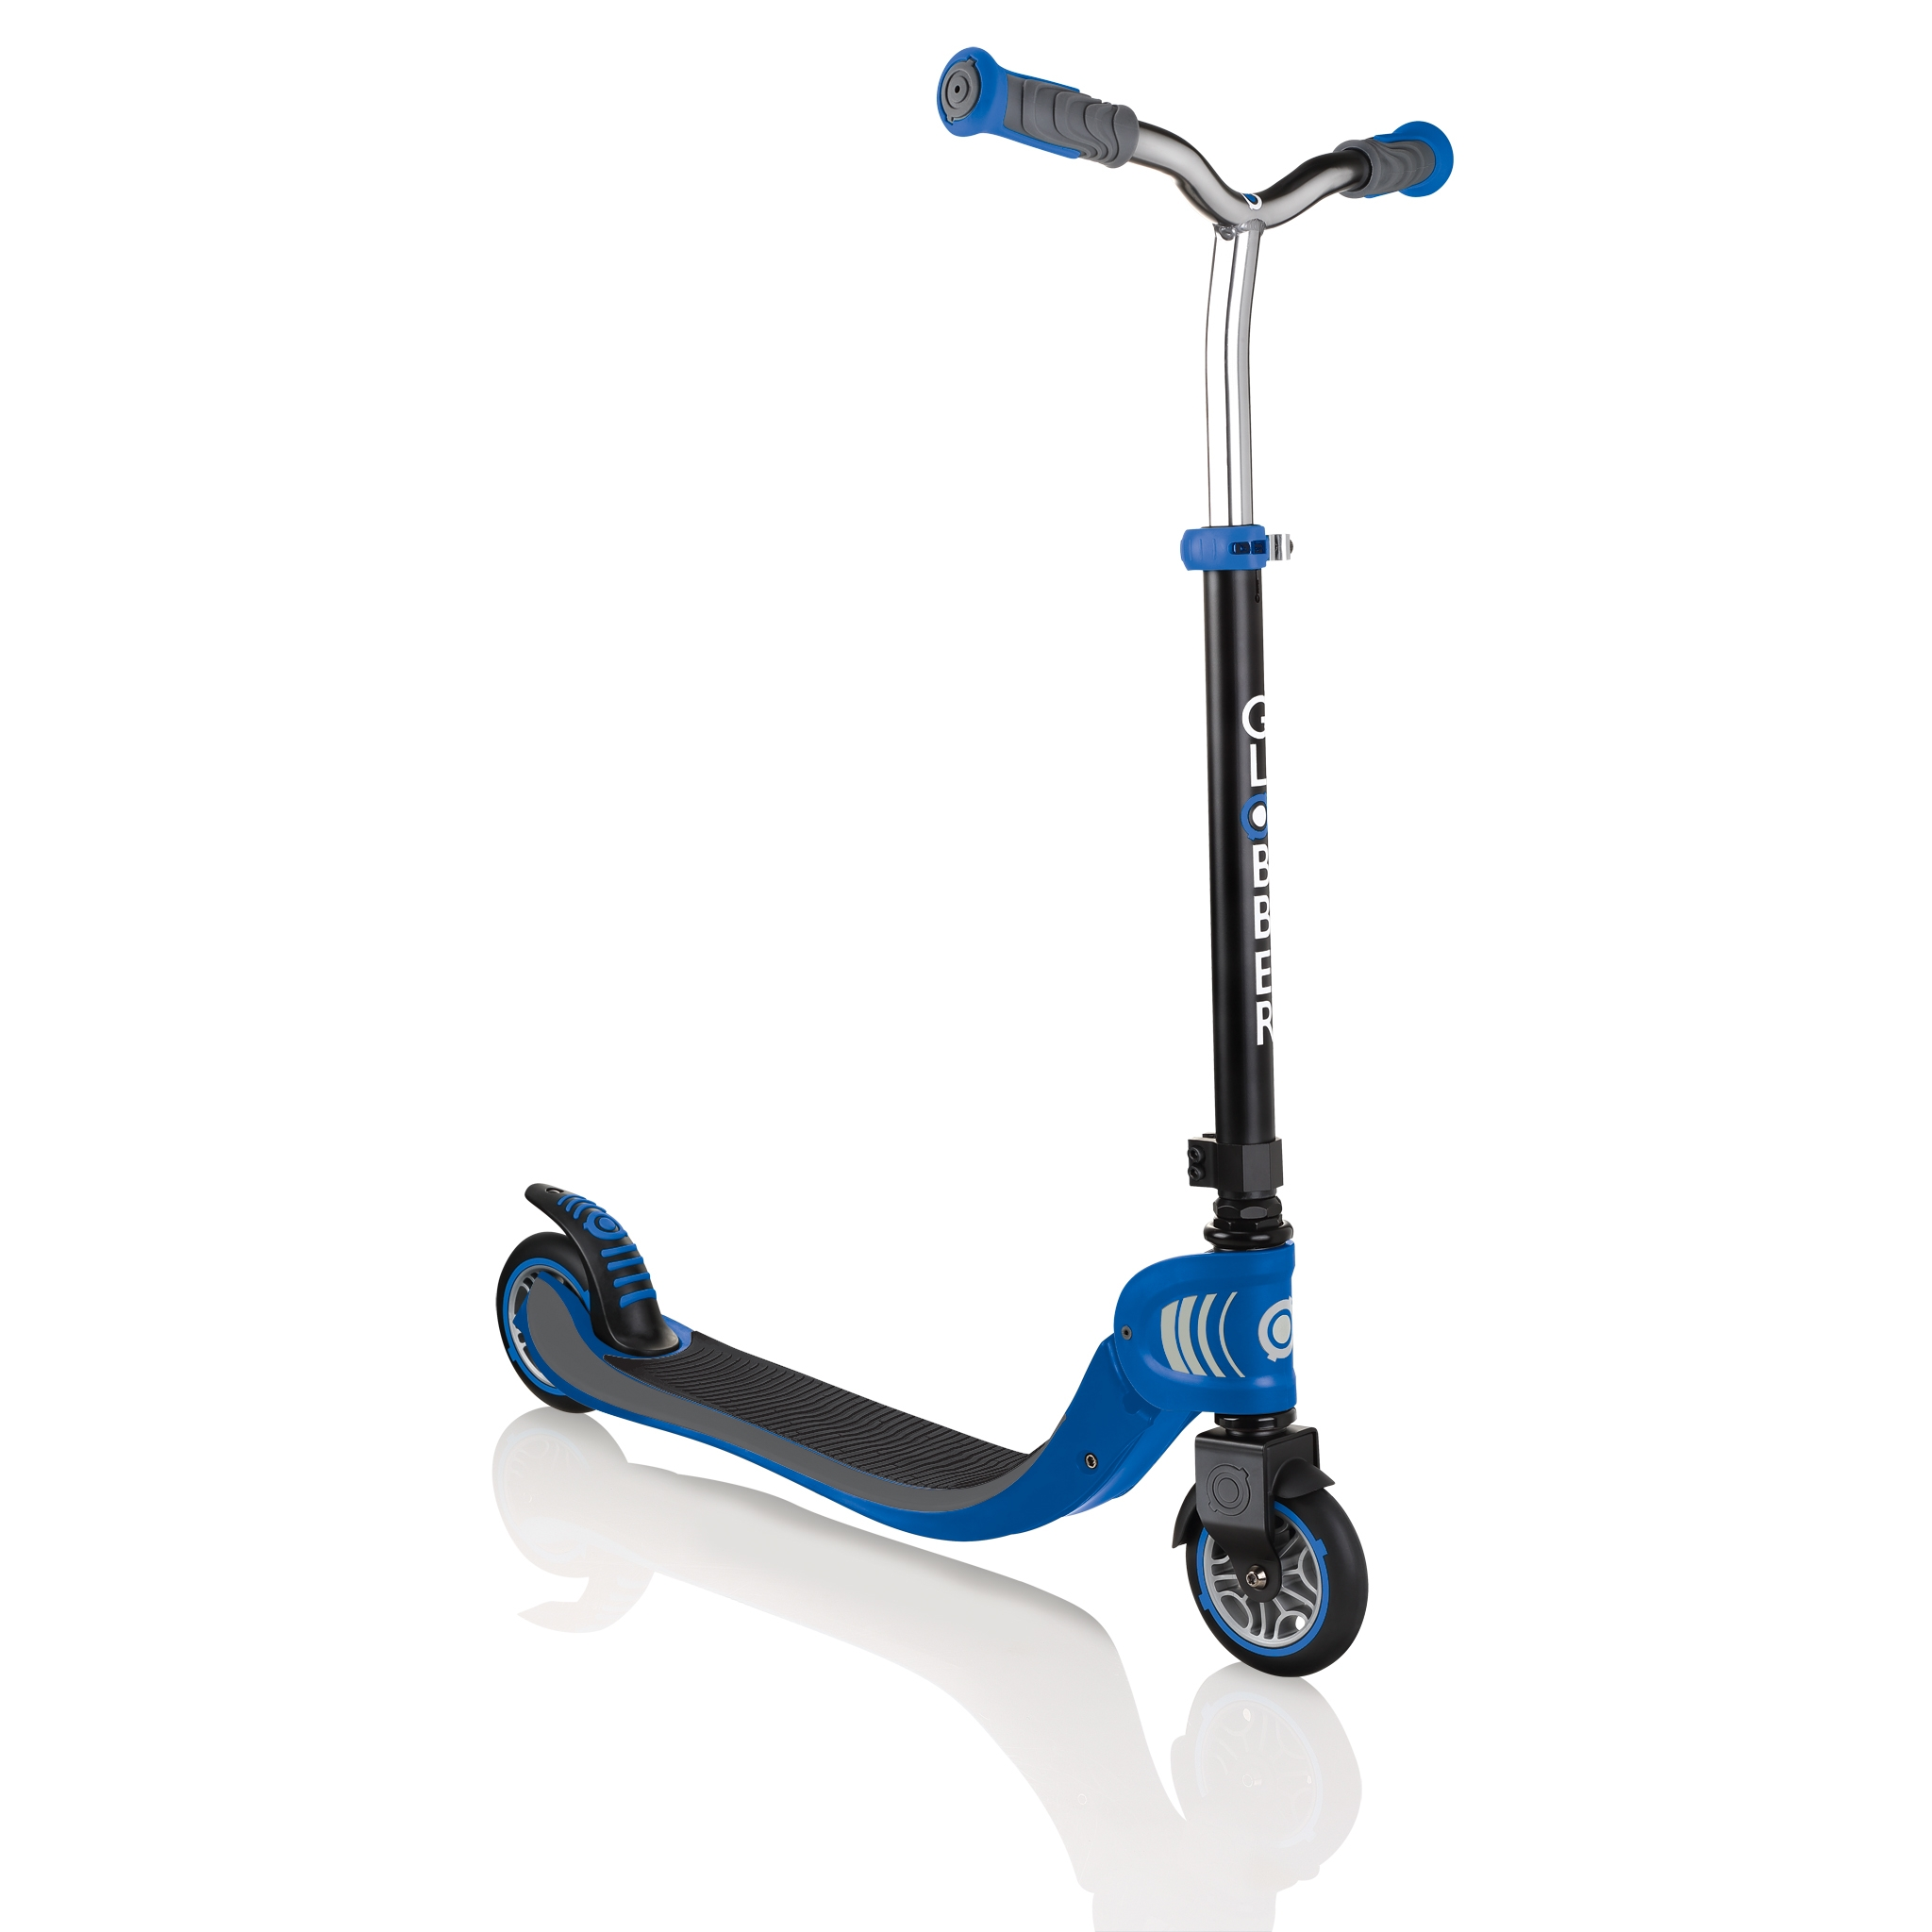 FLOW-FOLDABLE-125-2-wheel-scooter-for-kids-navy-blue 0